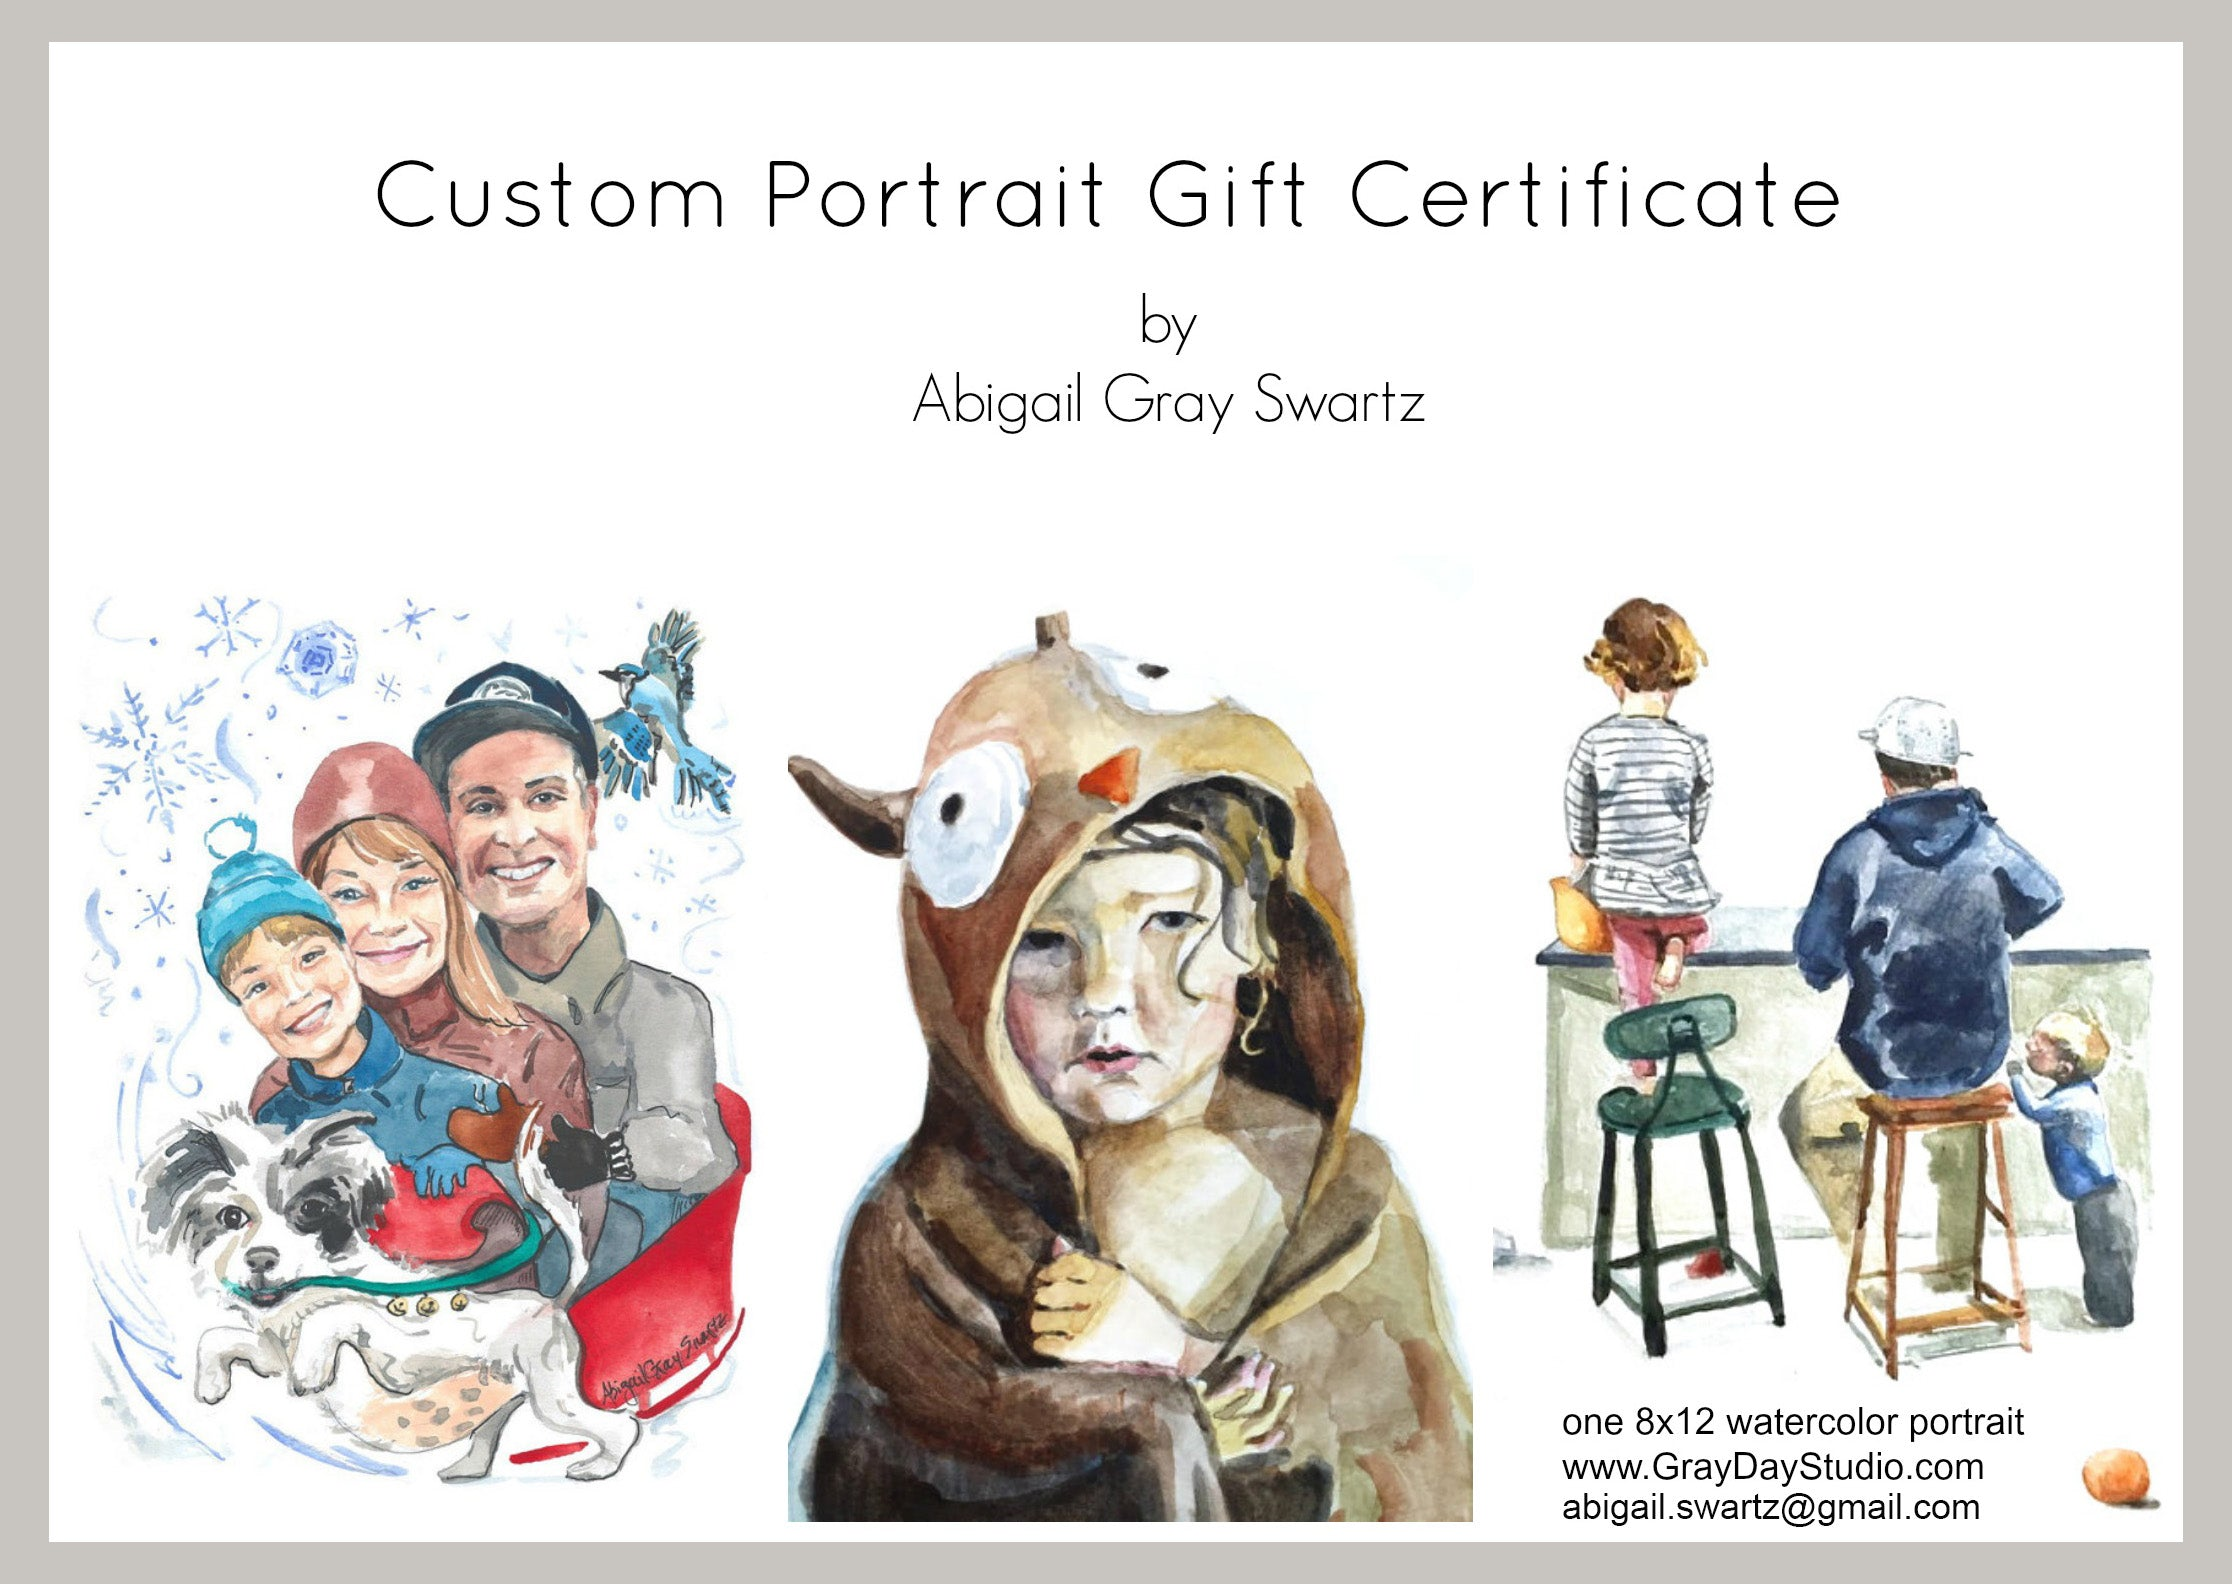 Custom Portrait, Gift Certificate, pet portrait, house portrait, people portrait